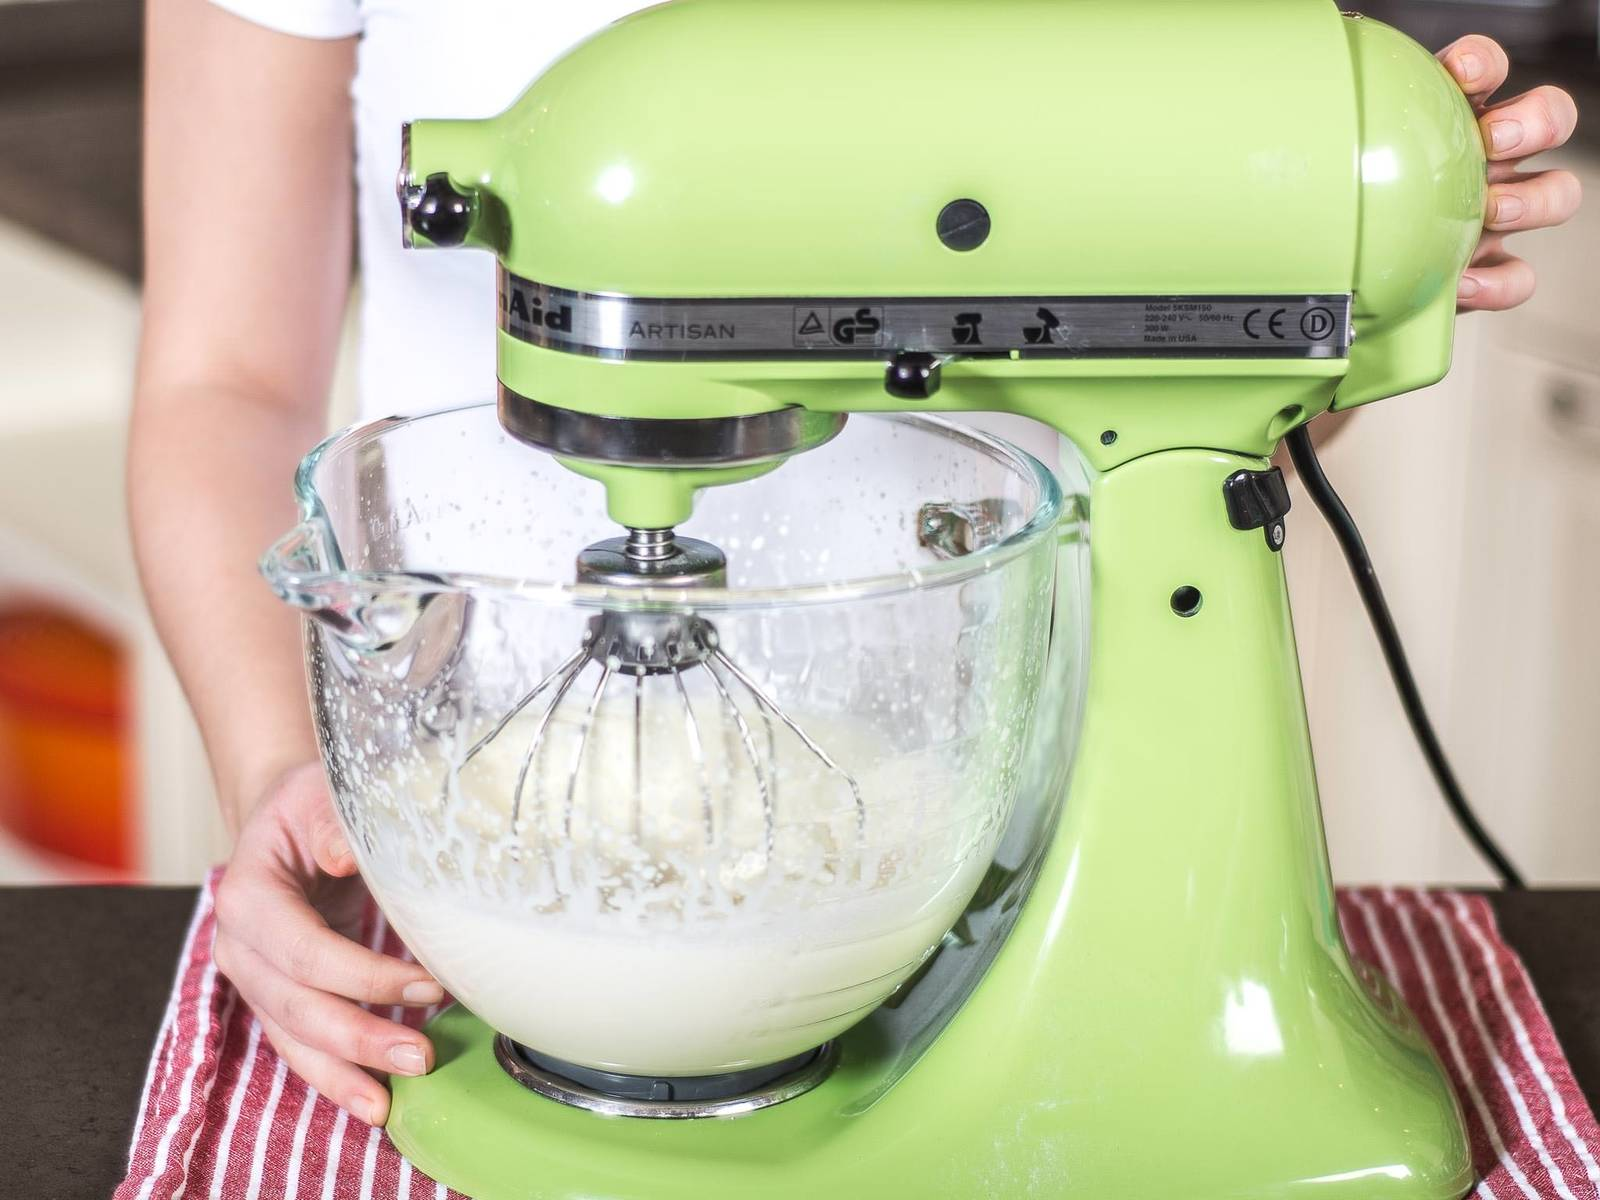 Now whip heavy cream in a standing mixer or with a hand mixer until stiff peaks form.